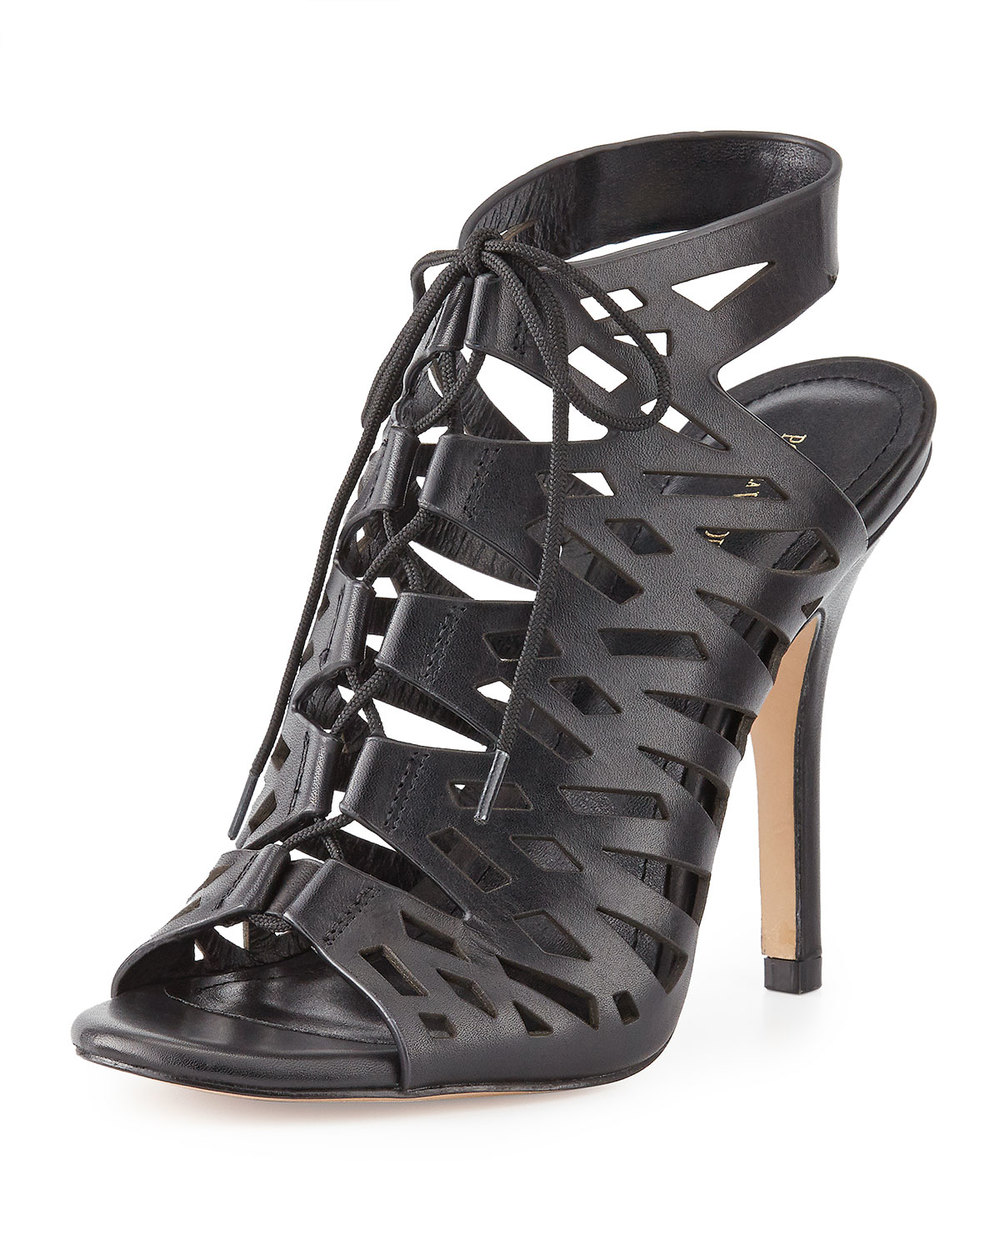 POUR LA VICTOIRE LASER-CUT SOFT LEATHER SANDAL, BRASS was $342 now $142.40